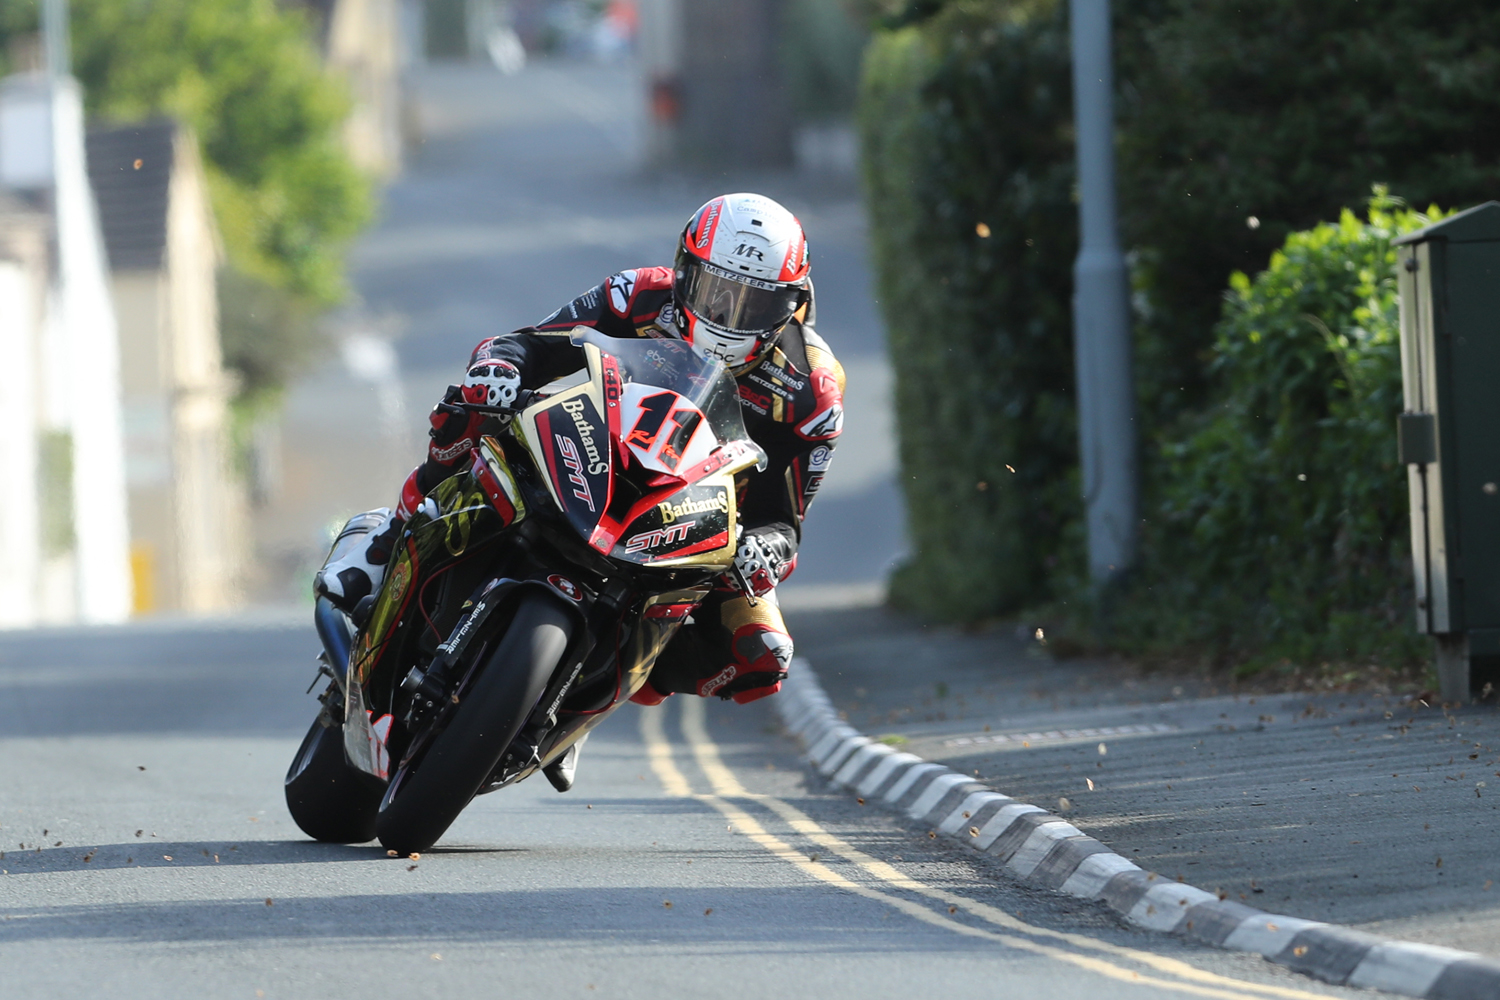 31/05/2017: Michael Rutter (BMW/Bathams SMT Racing) through the village of Kirk Michael during qualifying for the Isle of Man TT. PICTURE BY DAVE KNEEN/PACEMAKER PRESS.